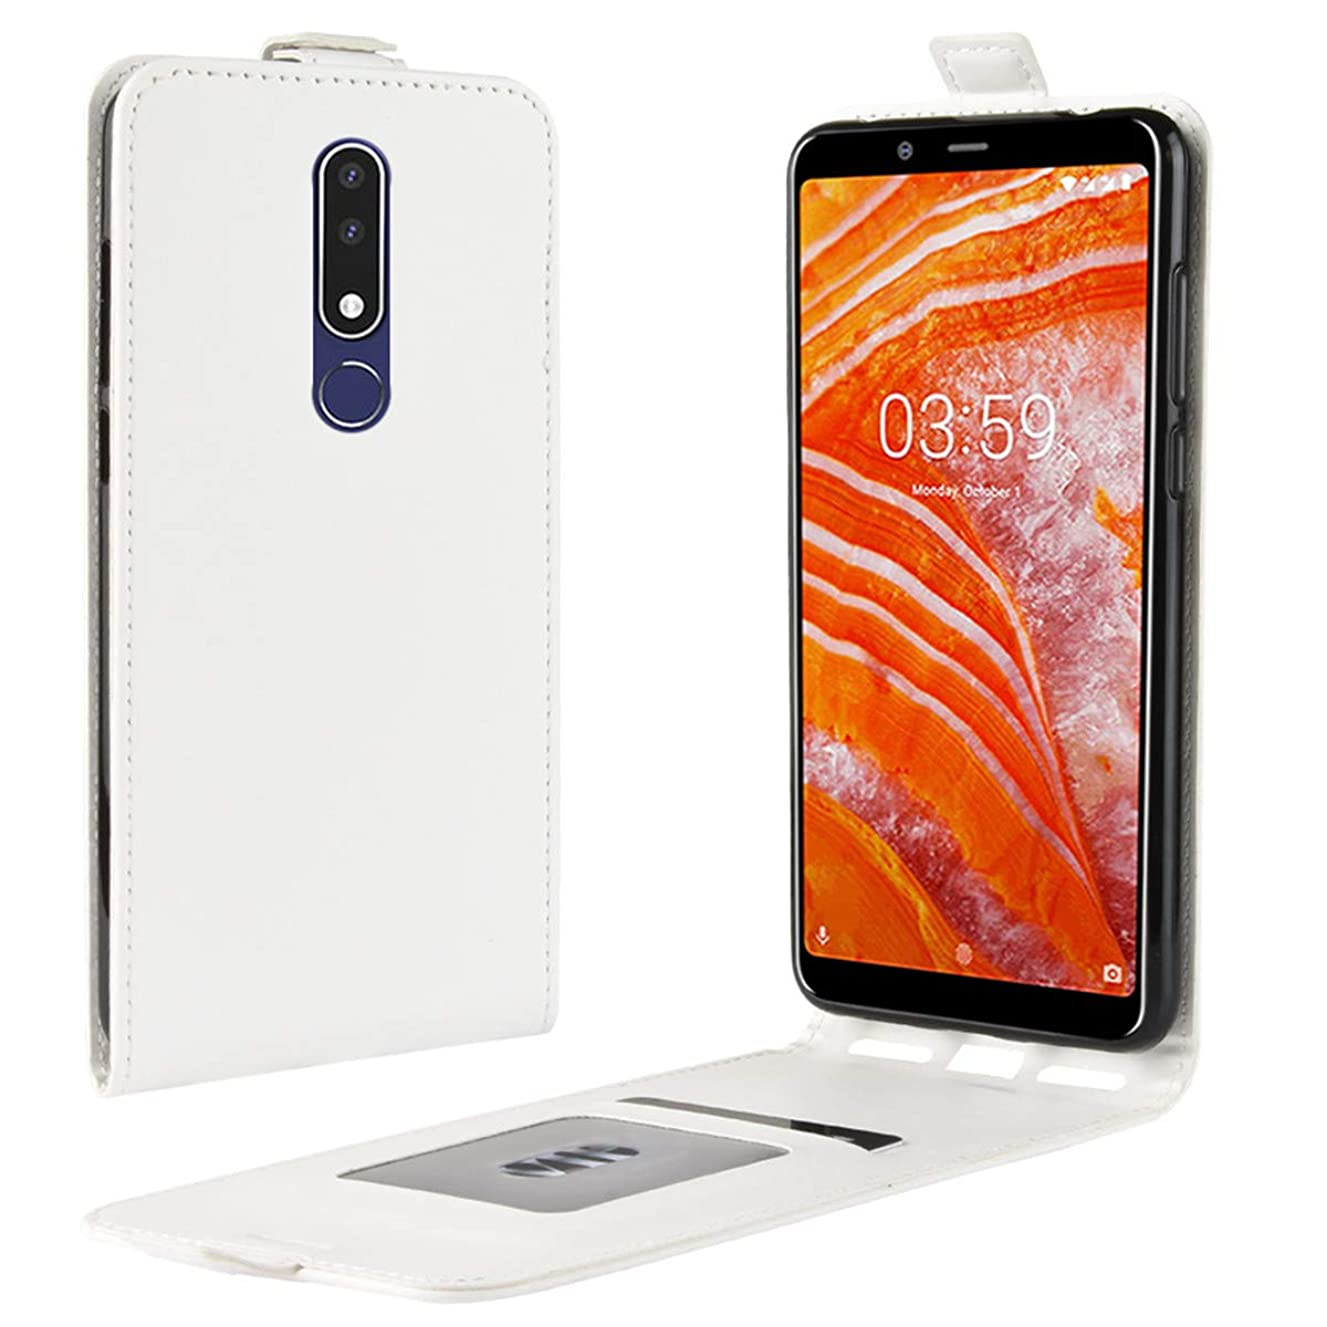 Nokia 3.1 Plus Case, Gift_Source Magnetic Closure Vertical Flip Folio PU Leather Case Up-Down Open Protective Cover Built-in Card Slots for Nokia 3.1 Plus (6.0 inch) [White]